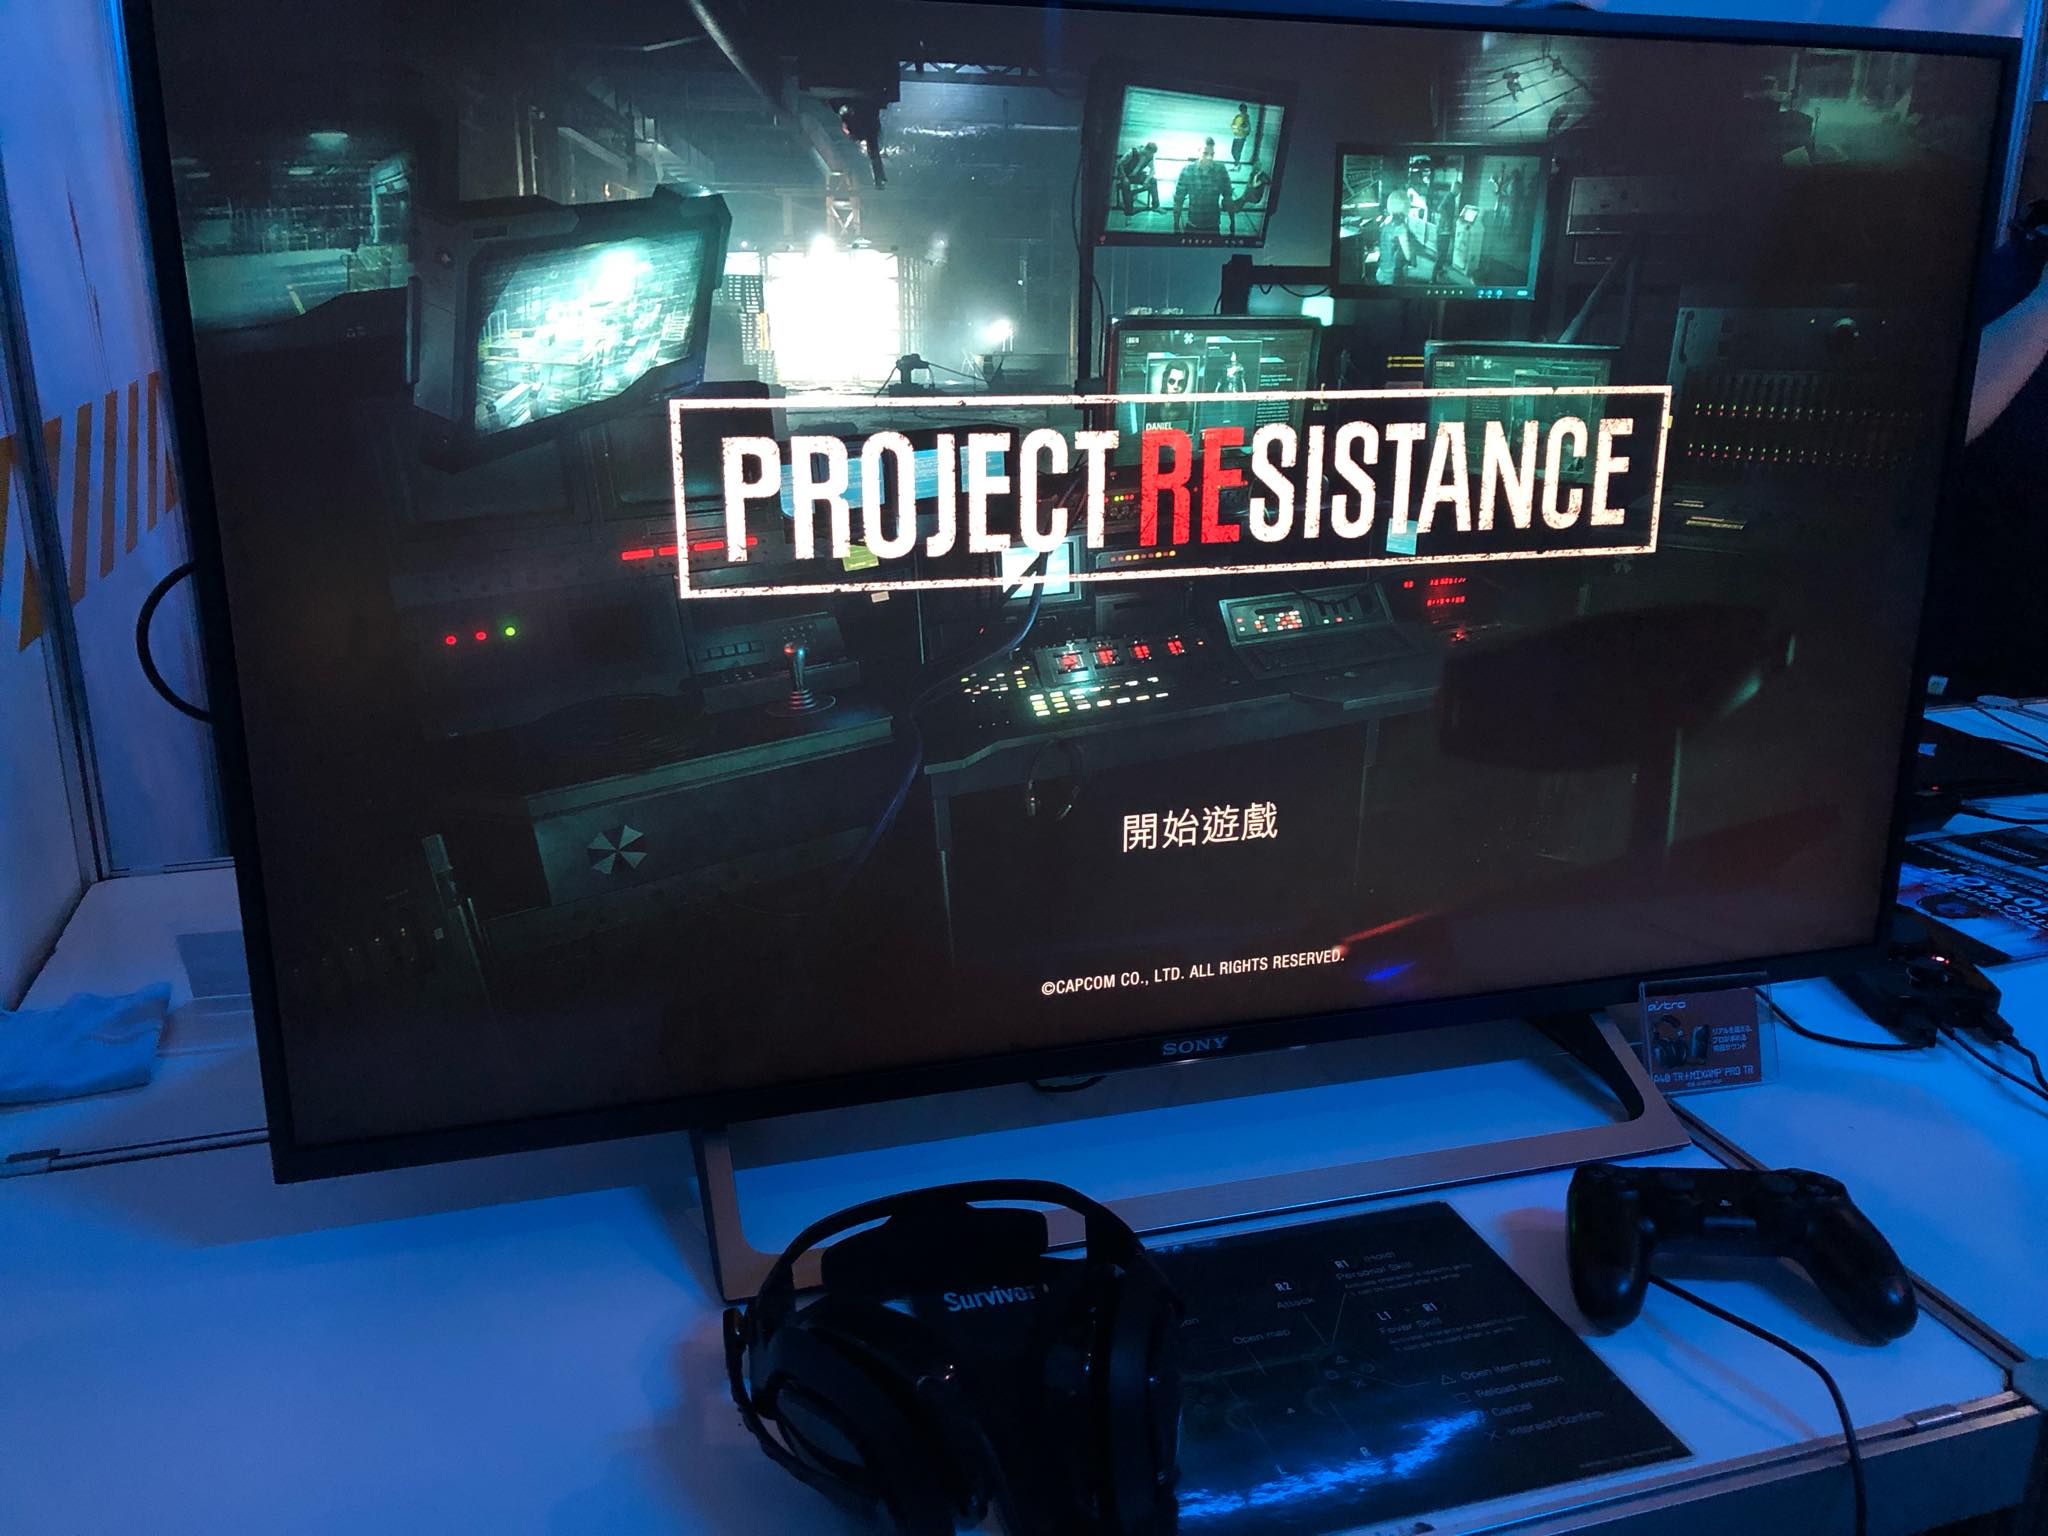 project resistance hands on, 5 things we learned during our Project Resistance Hands-On in TGS2019, Gadget Pilipinas, Gadget Pilipinas